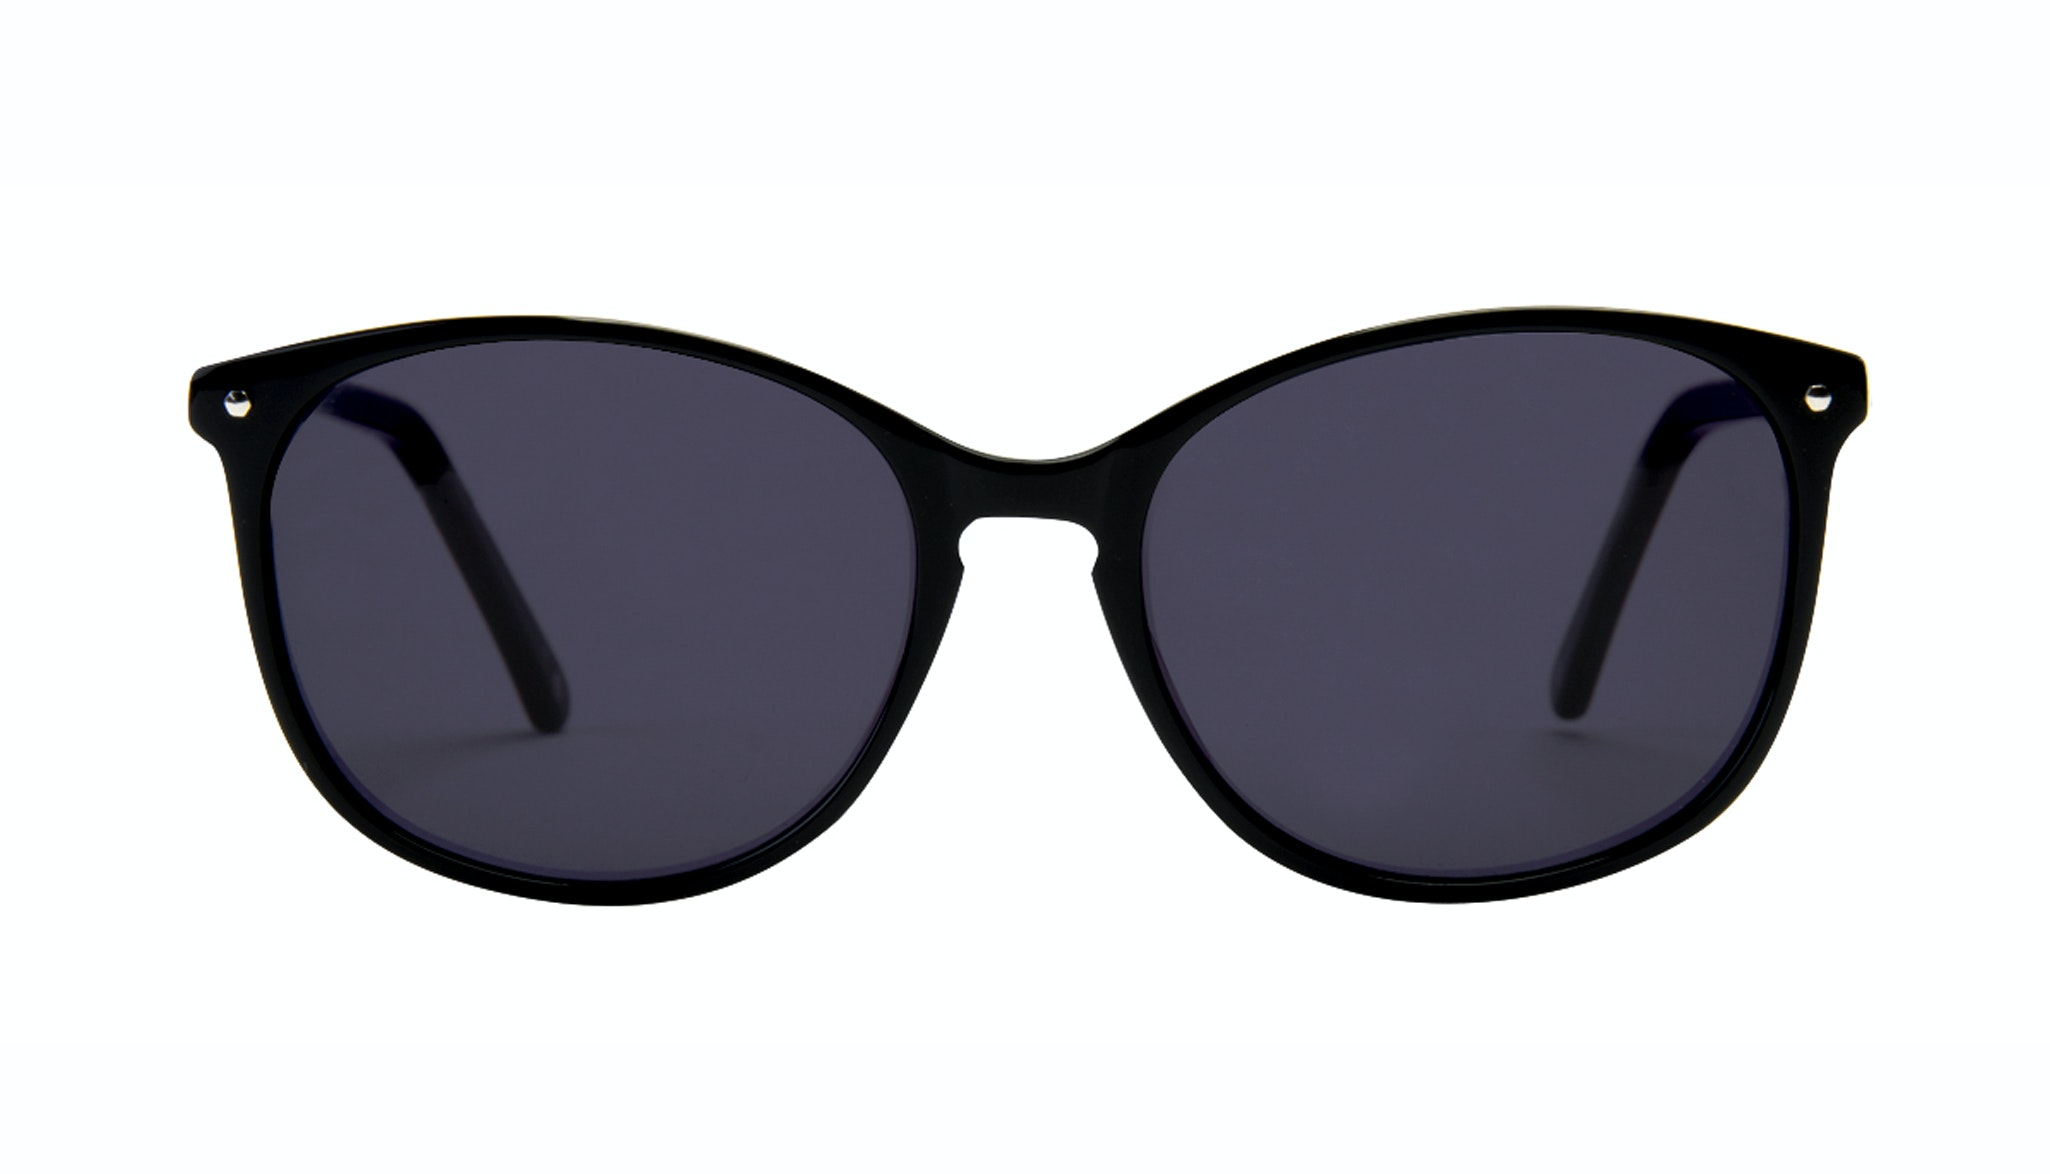 Affordable Fashion Glasses Rectangle Square Round Sunglasses Women Nadine Pitch Black Front